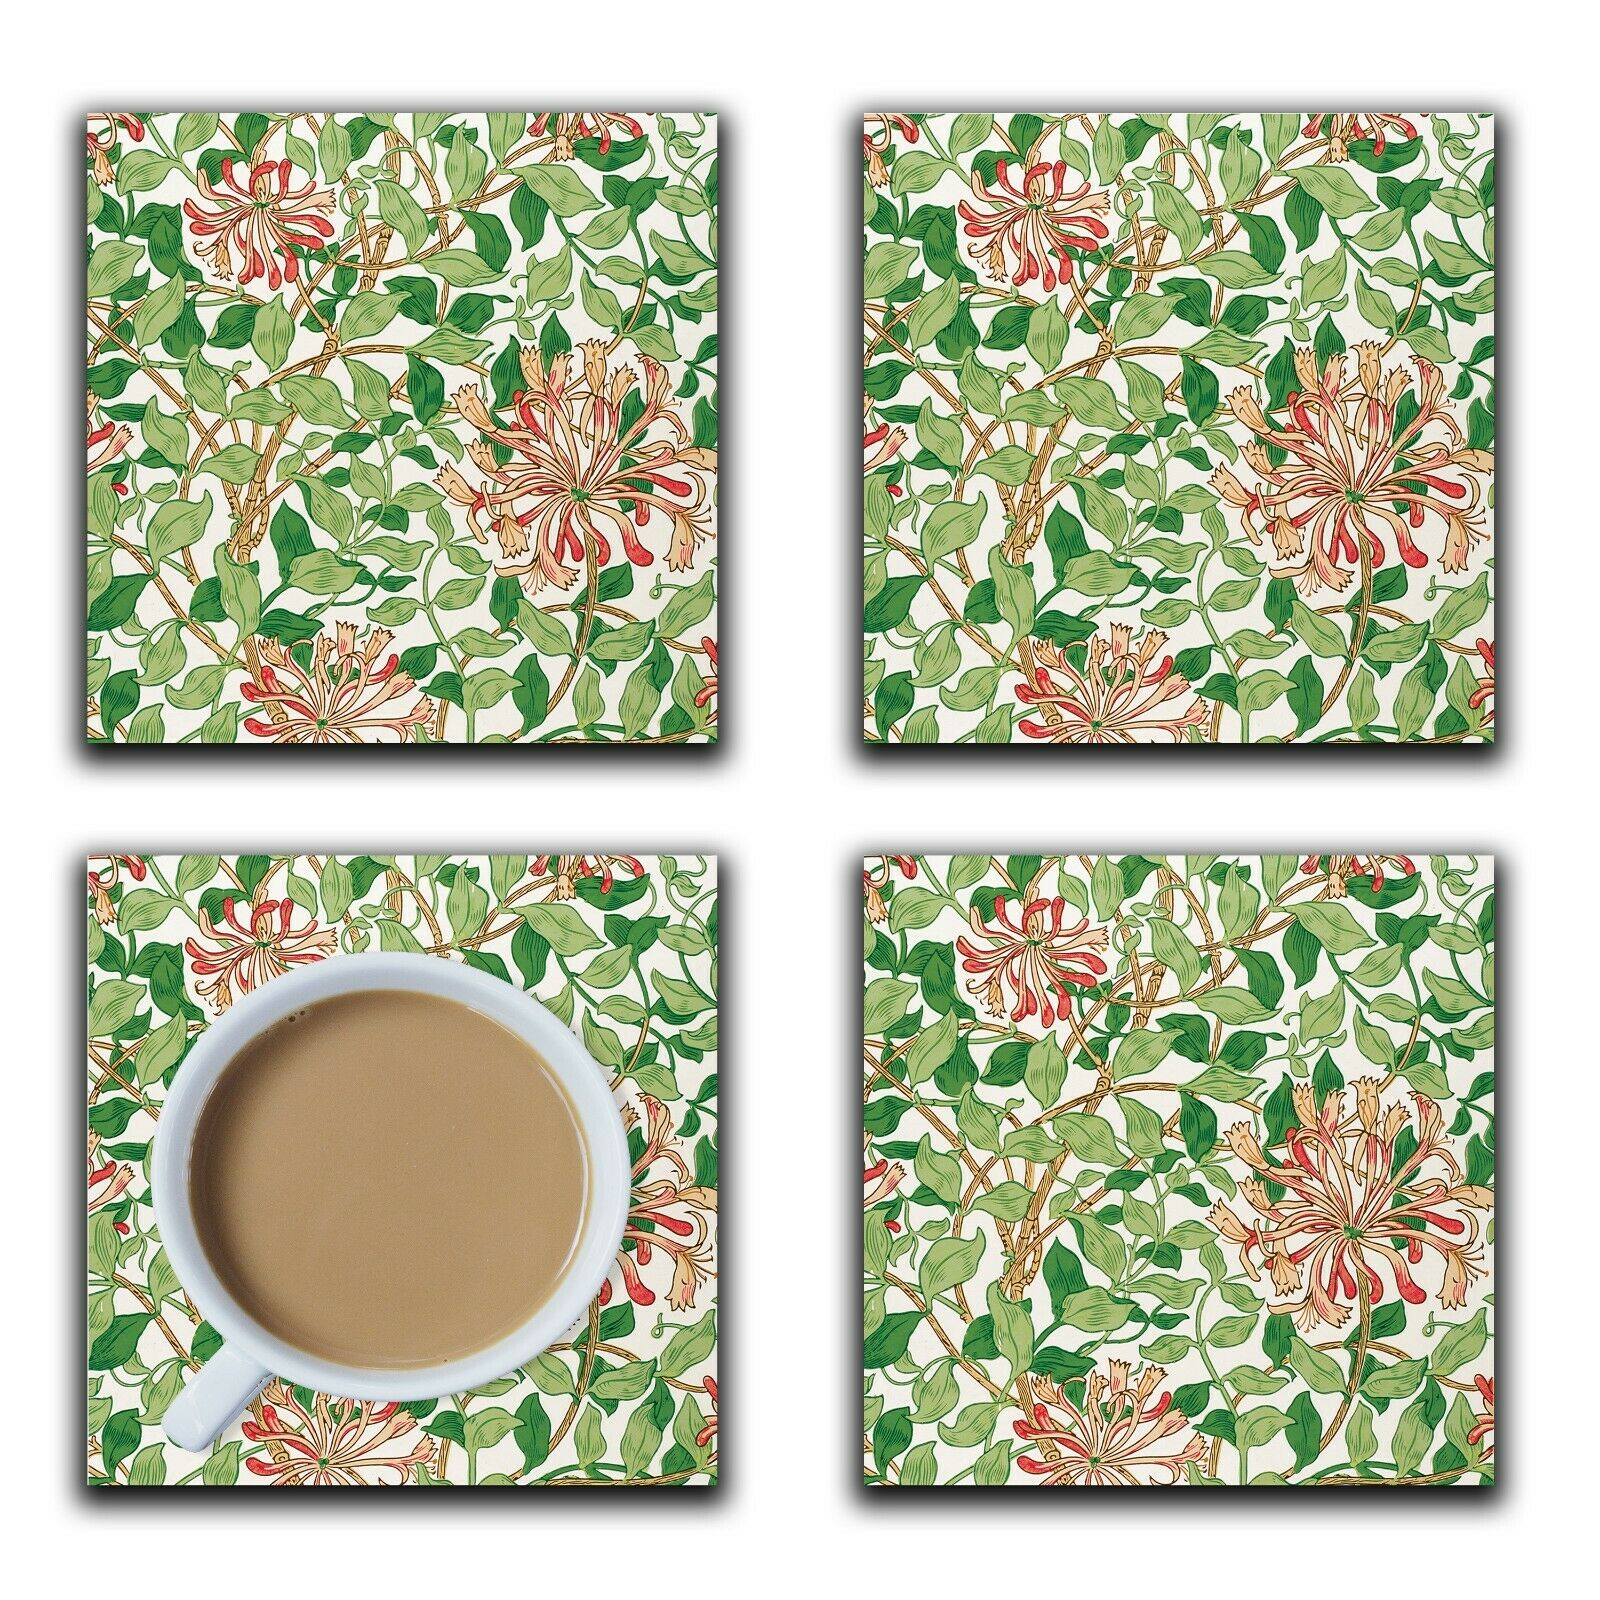 Embossi Printed William Morris Honeysuckle, wood or ceramic tile, 4 Coasters